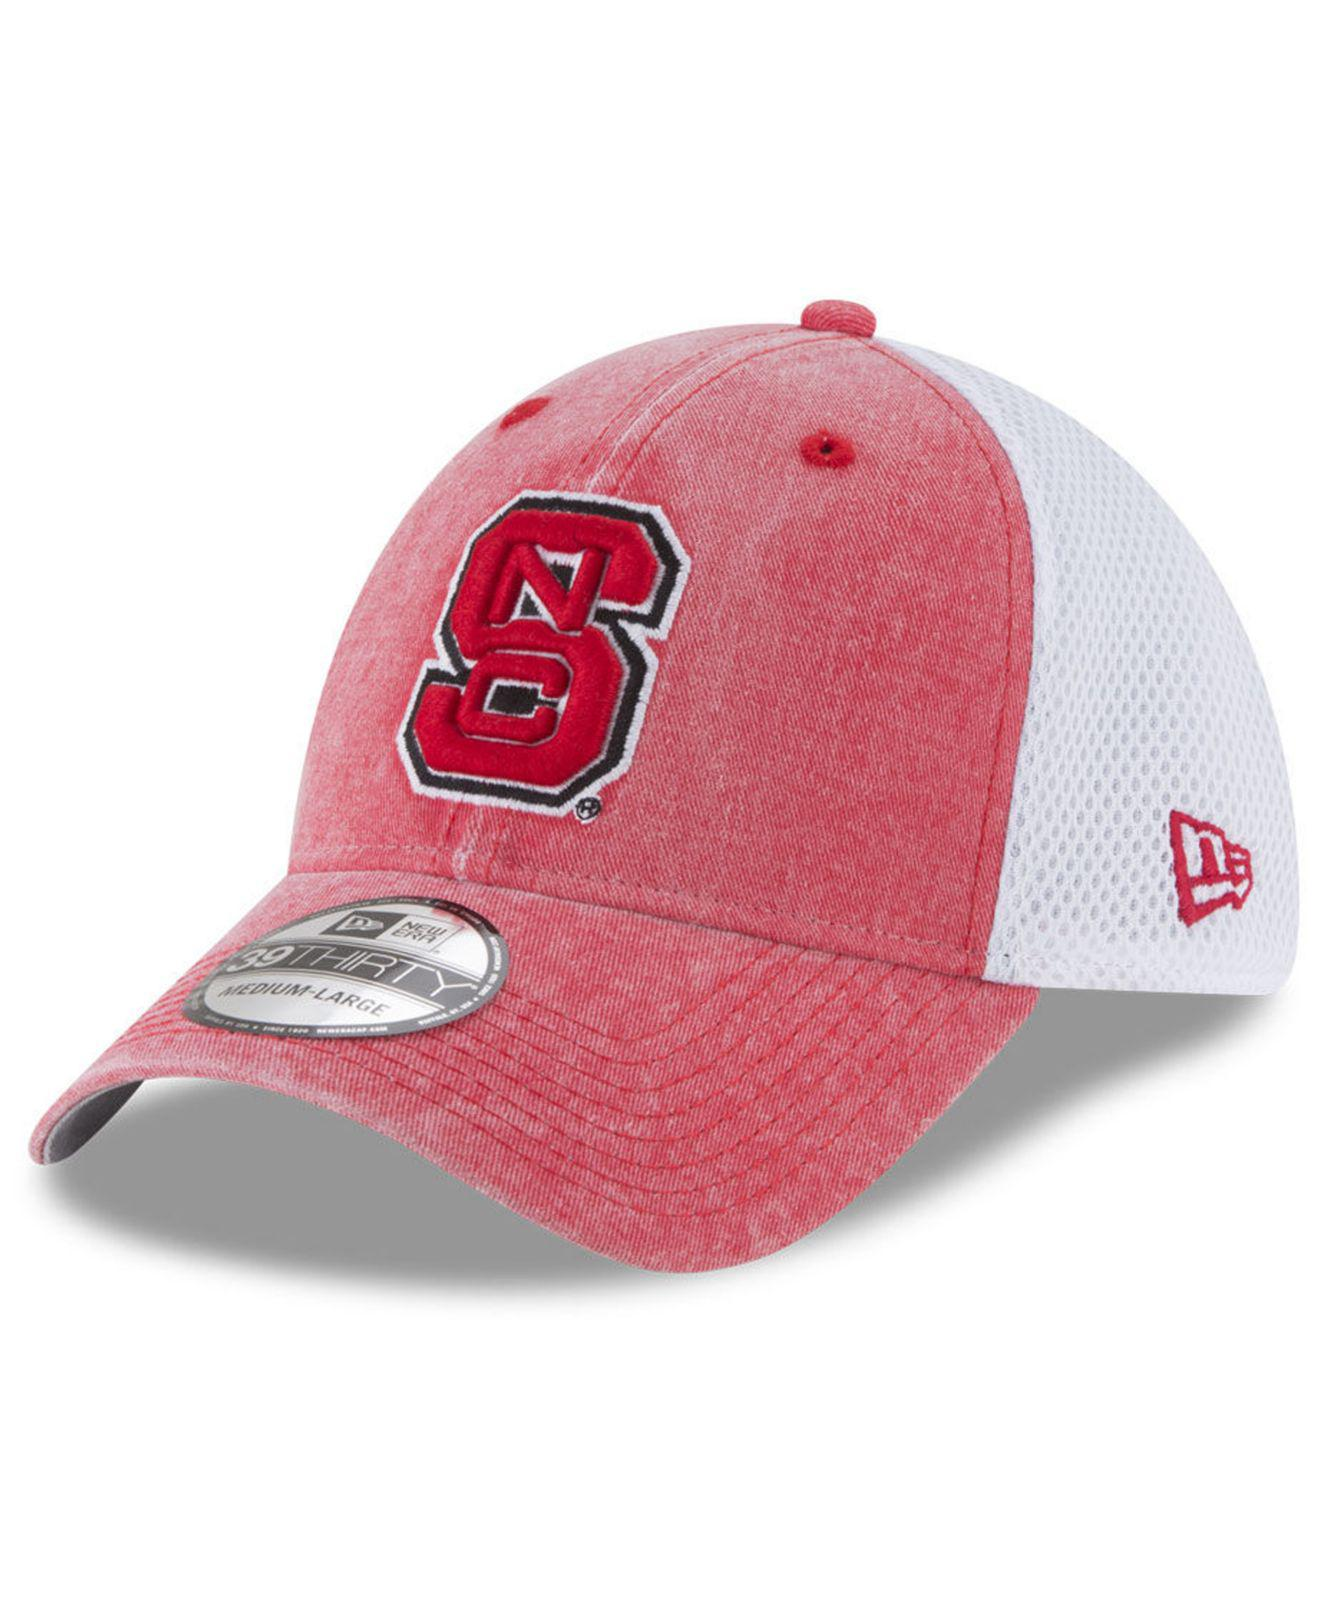 2c51b26c25d Lyst - KTZ North Carolina State Wolfpack Washed Neo 39thirty Cap for Men